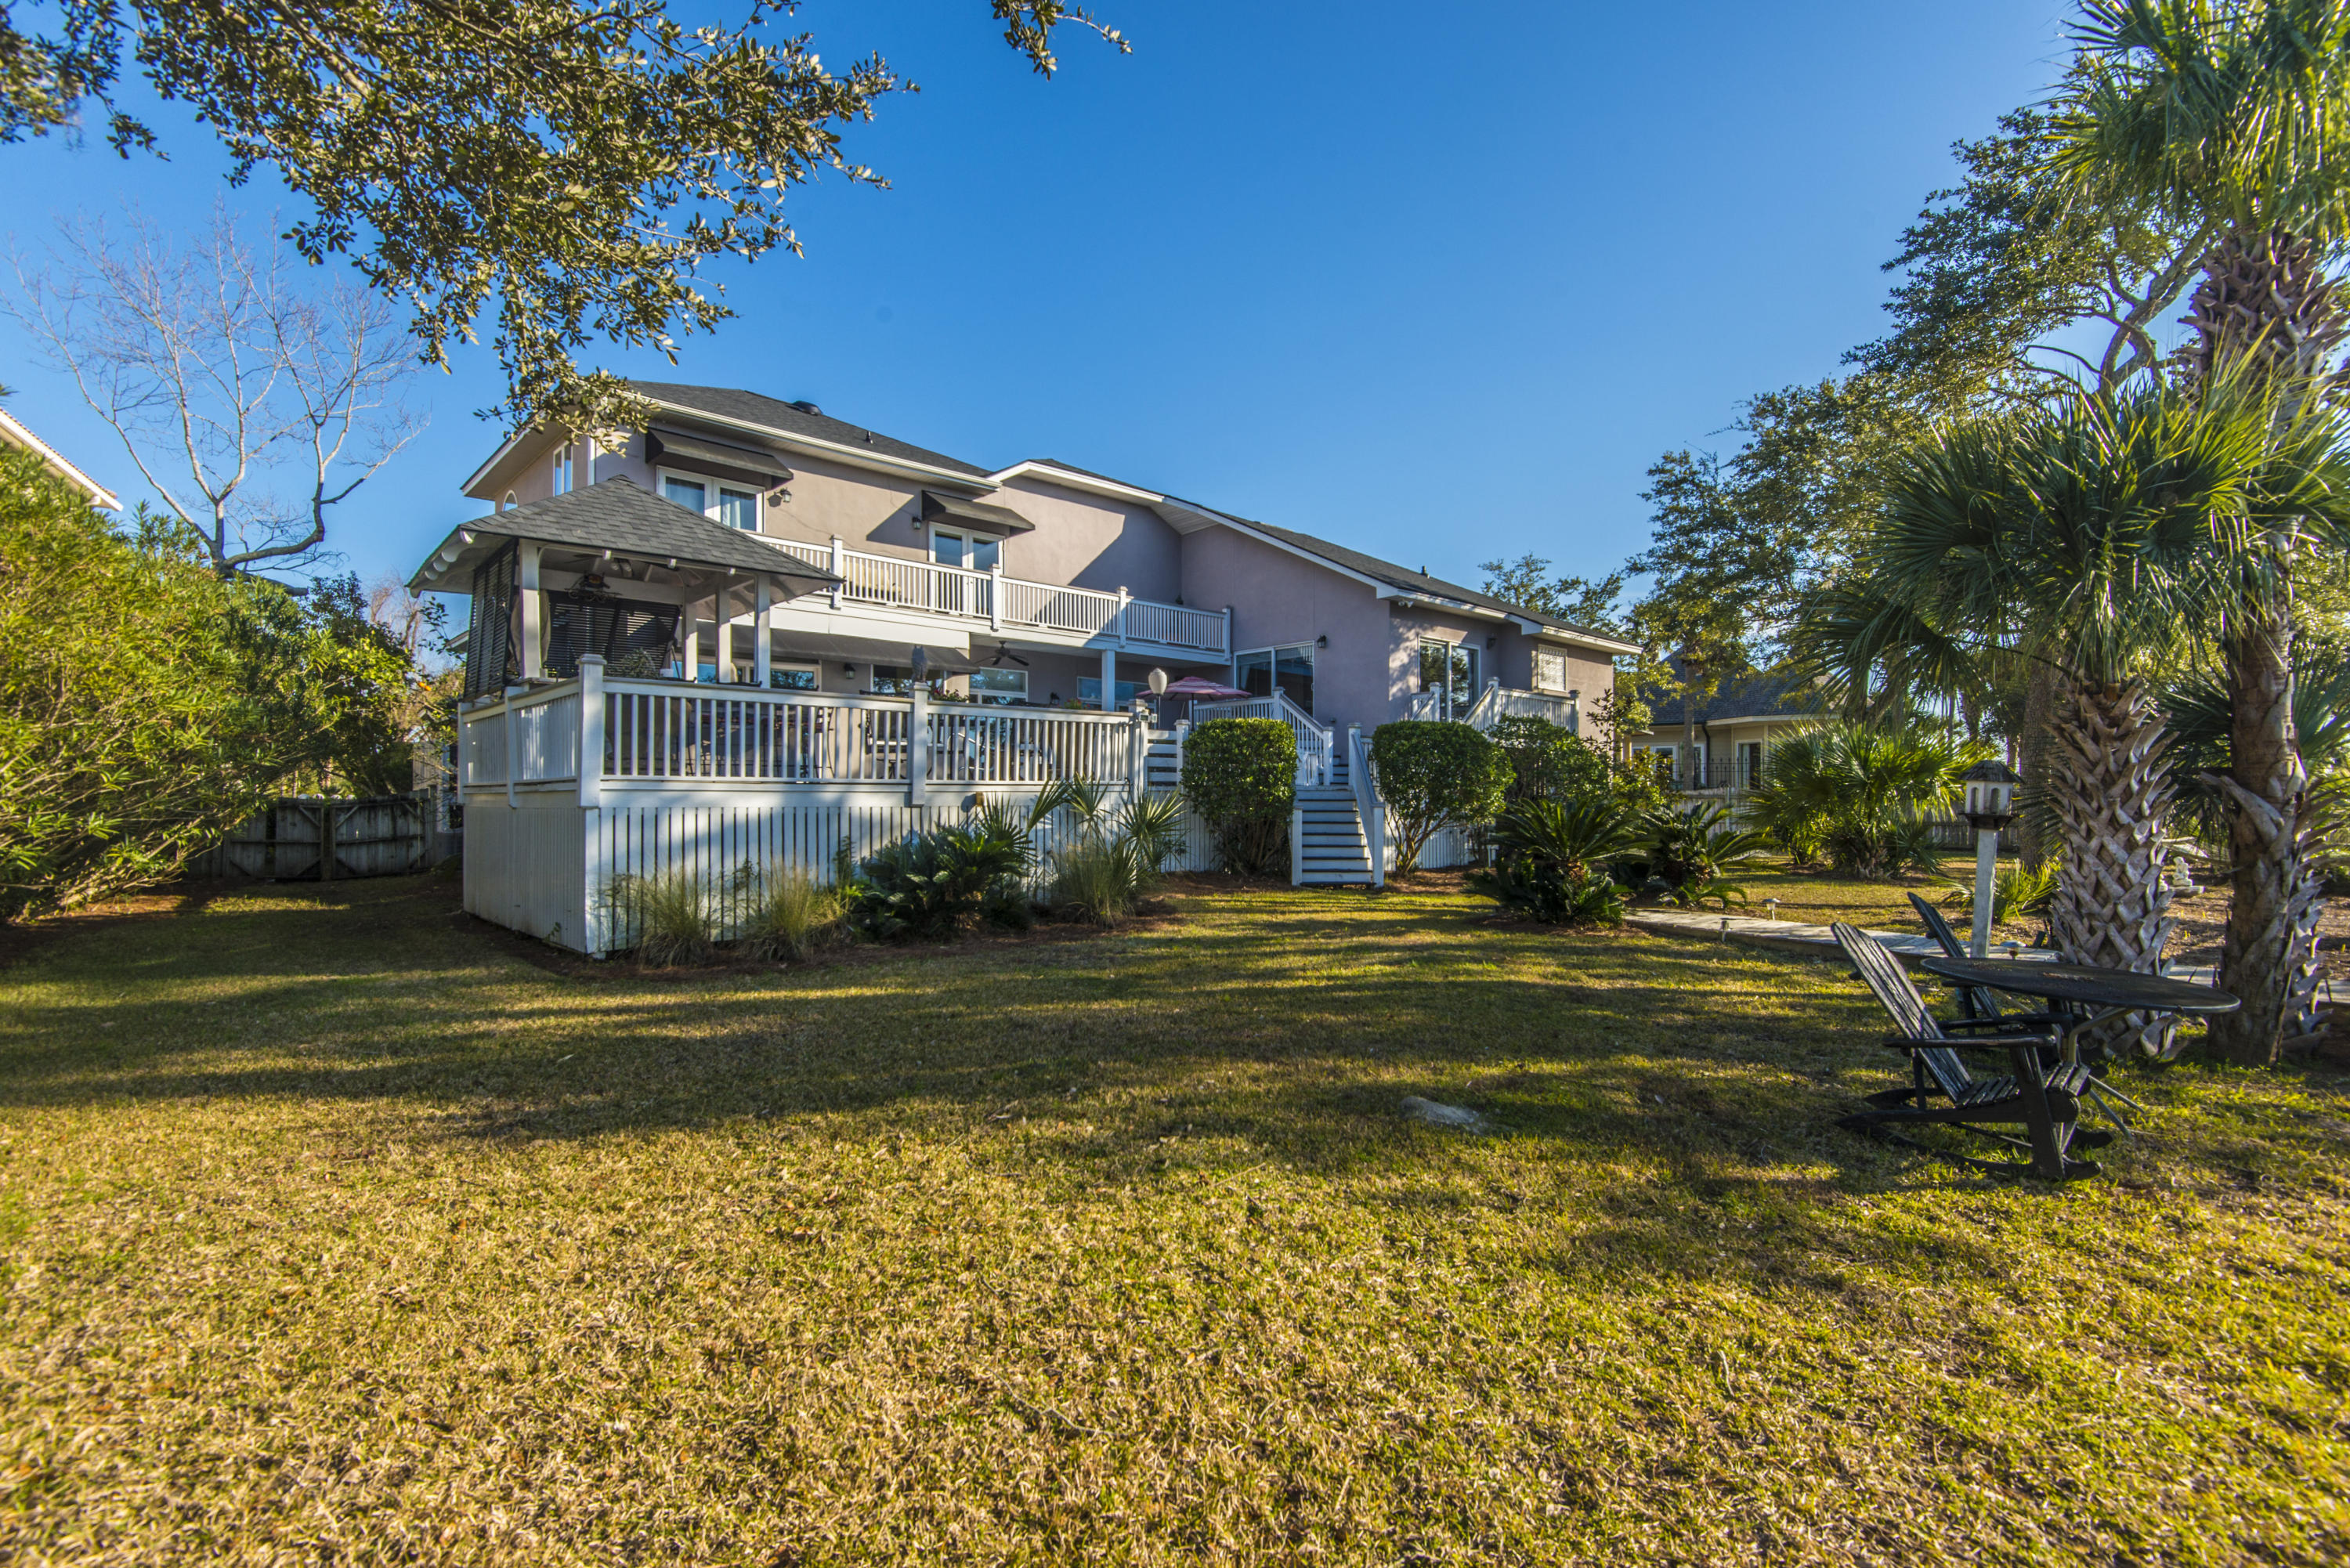 Rivertowne On The Wando Homes For Sale - 1958 Sandy Point, Mount Pleasant, SC - 10